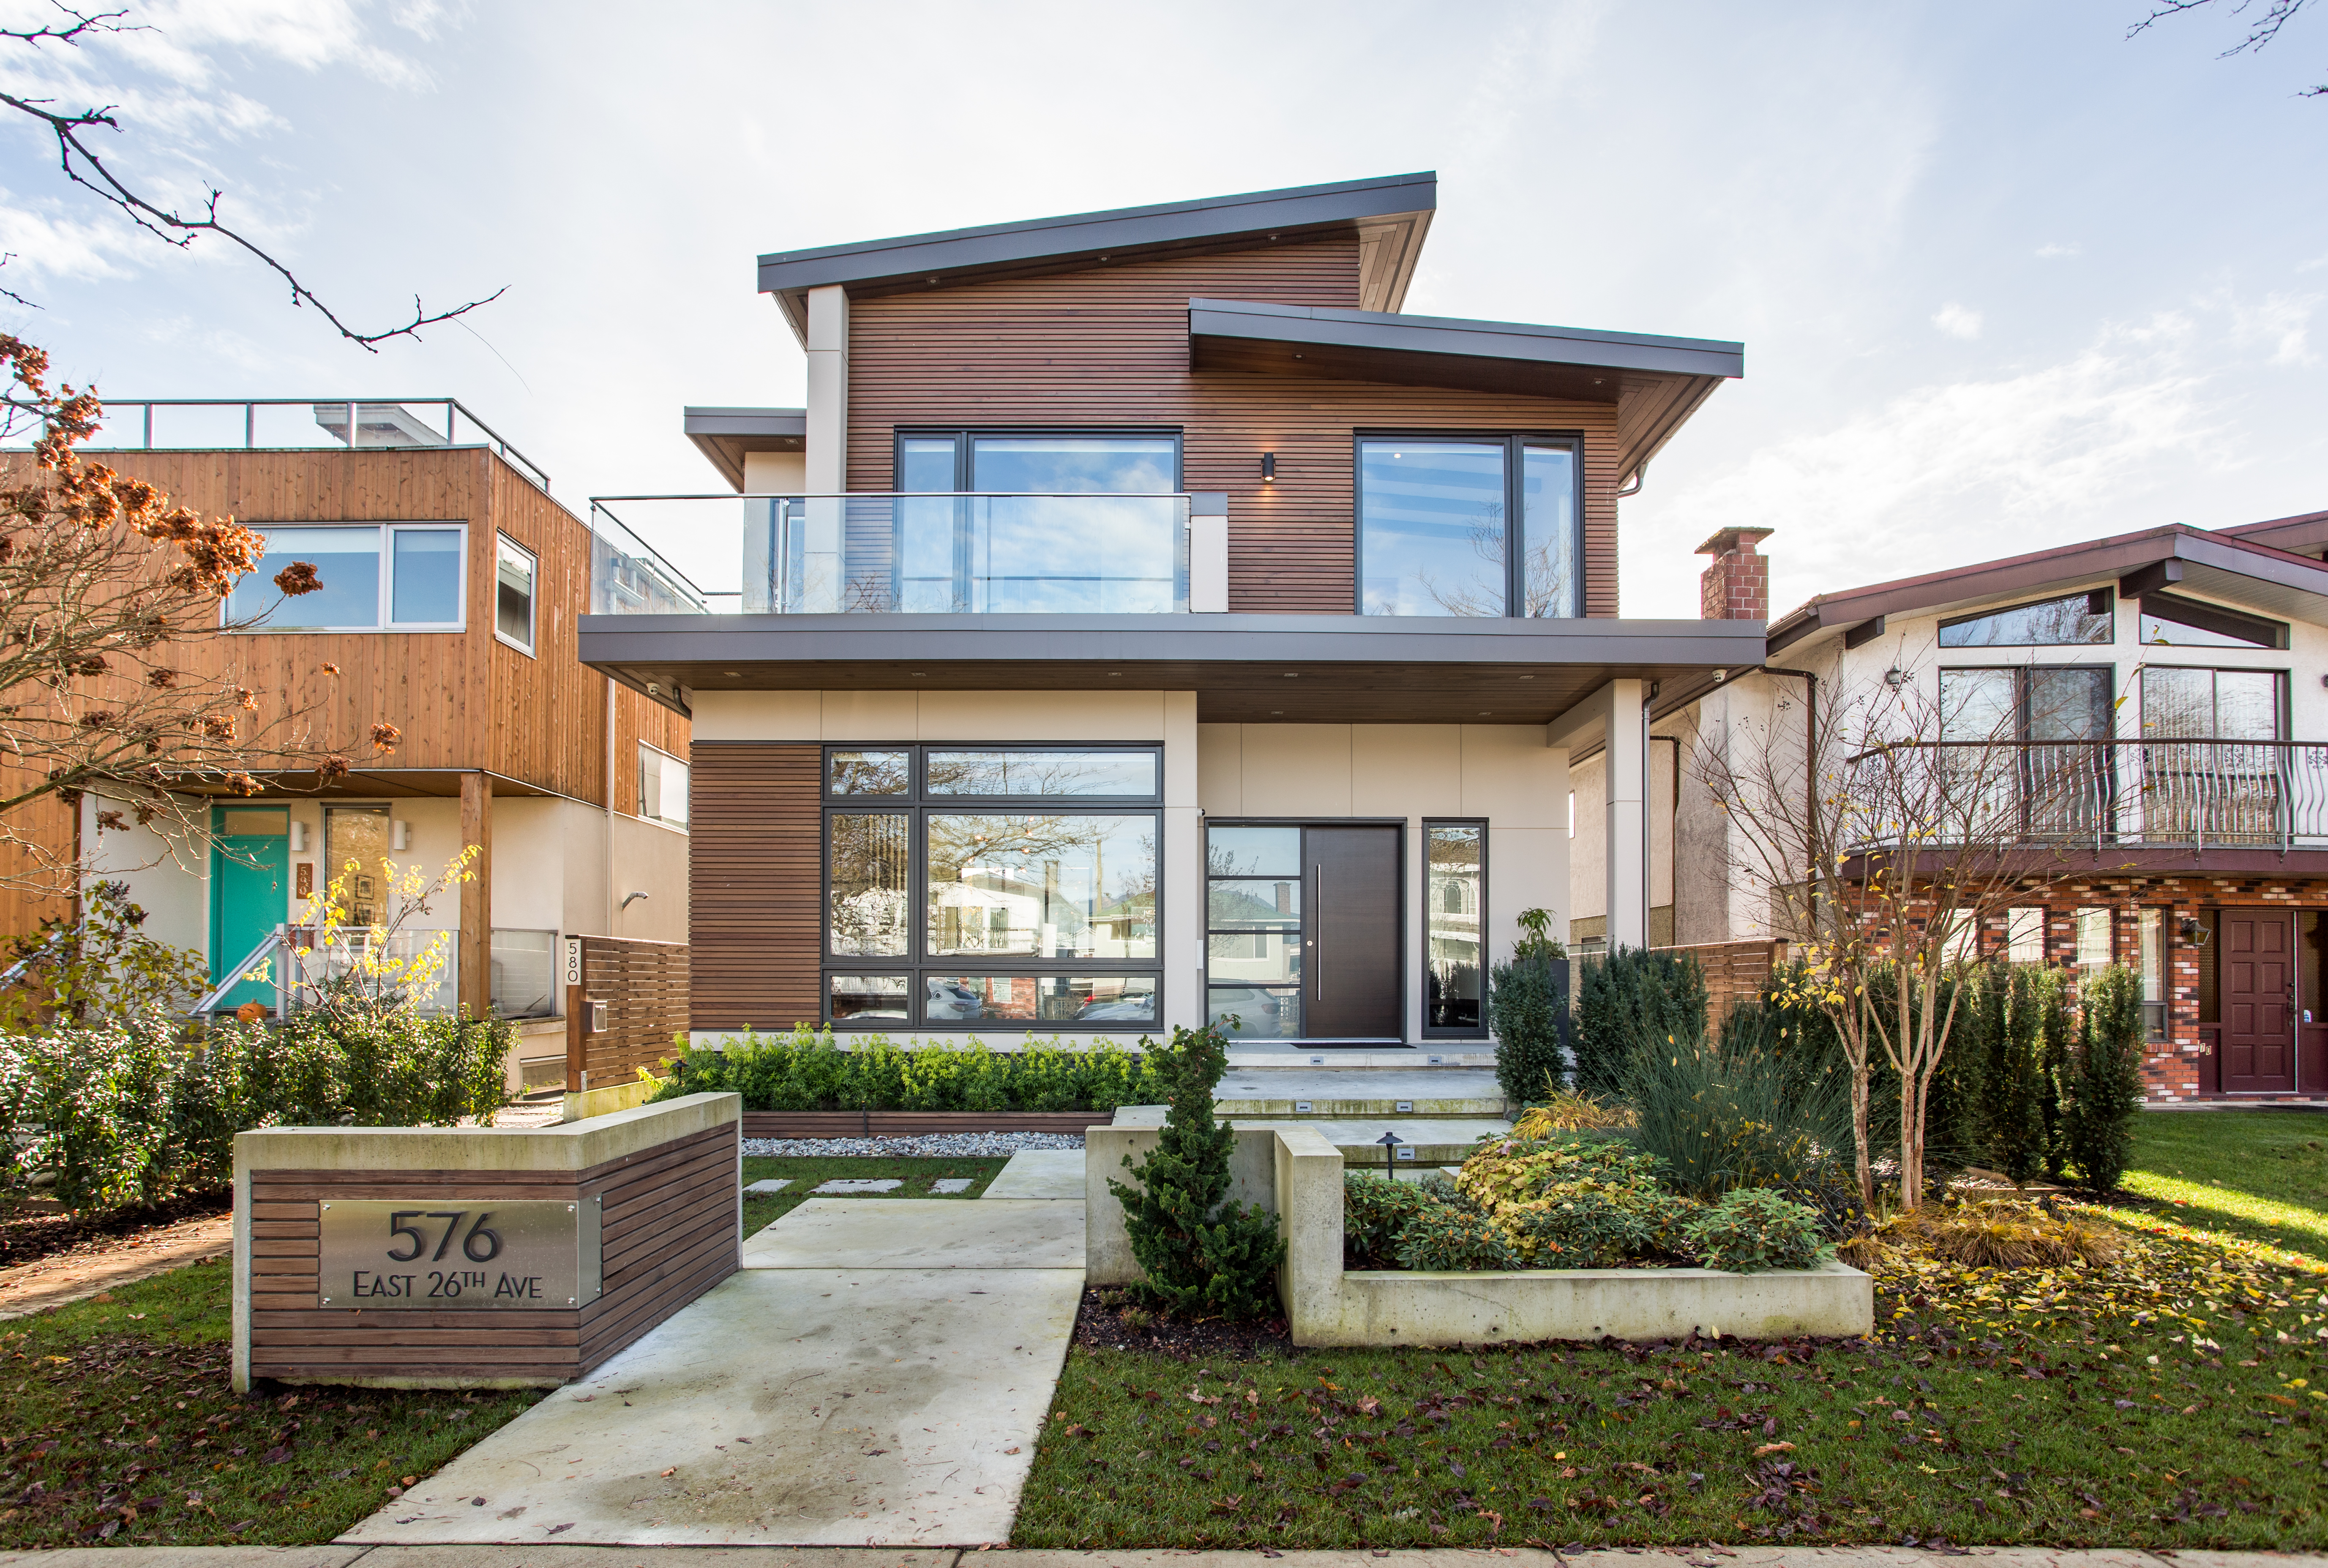 576 EAST 26TH AVE VANCOUVER-23